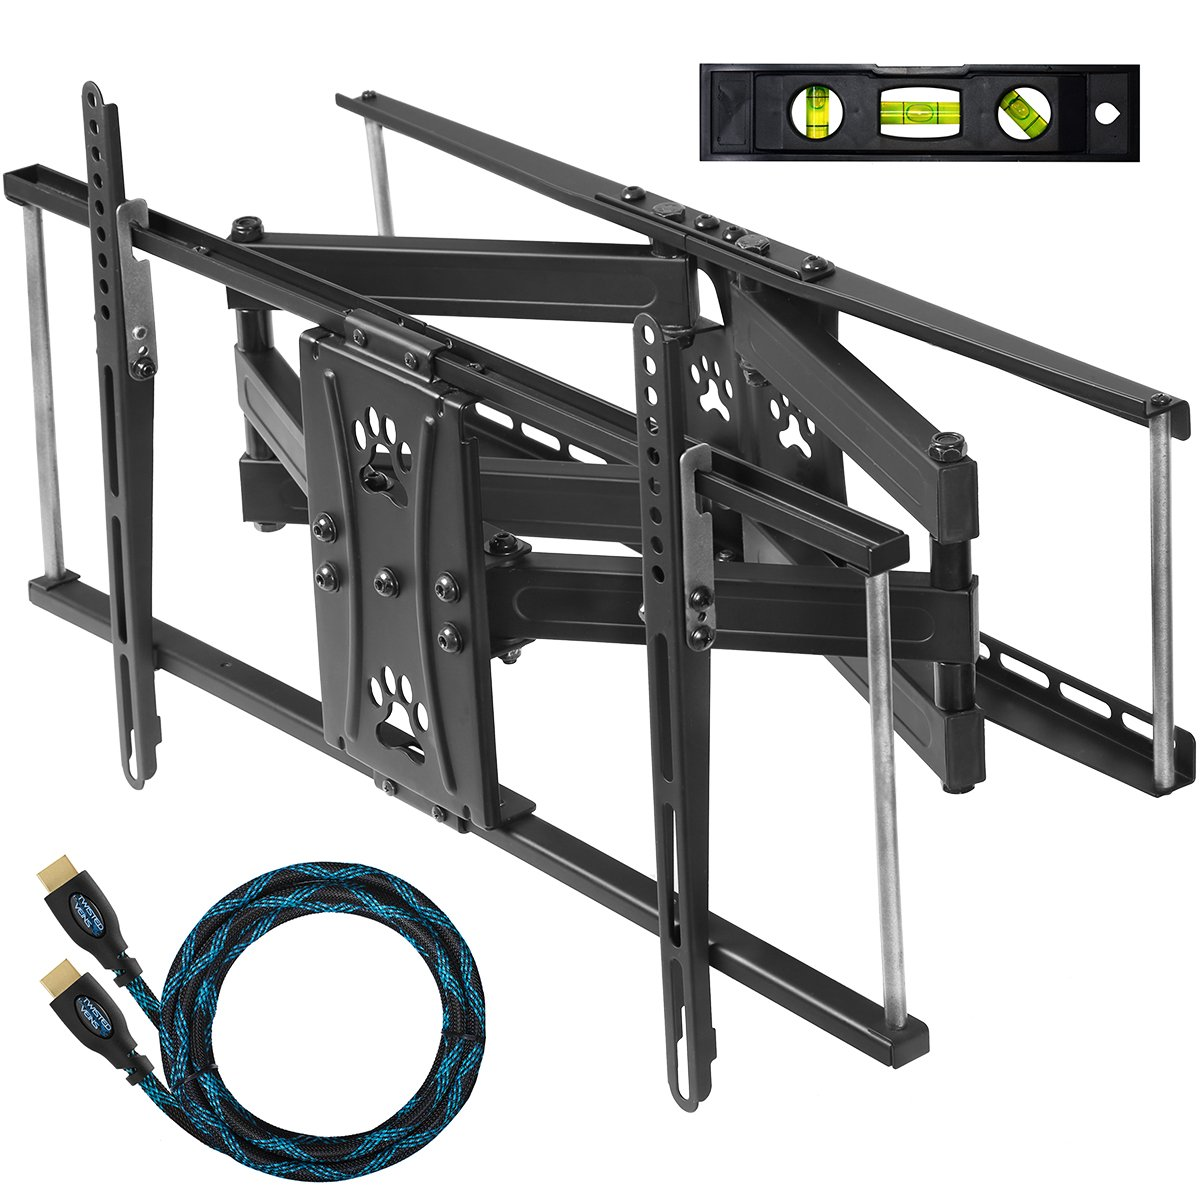 "Cheetah Mounts APDAM2B Articulating Dual Arm TV Wall Mount Bracket with Full Motion Tilt and Swivel for 32-65"" LCD, LED, Plasma .."